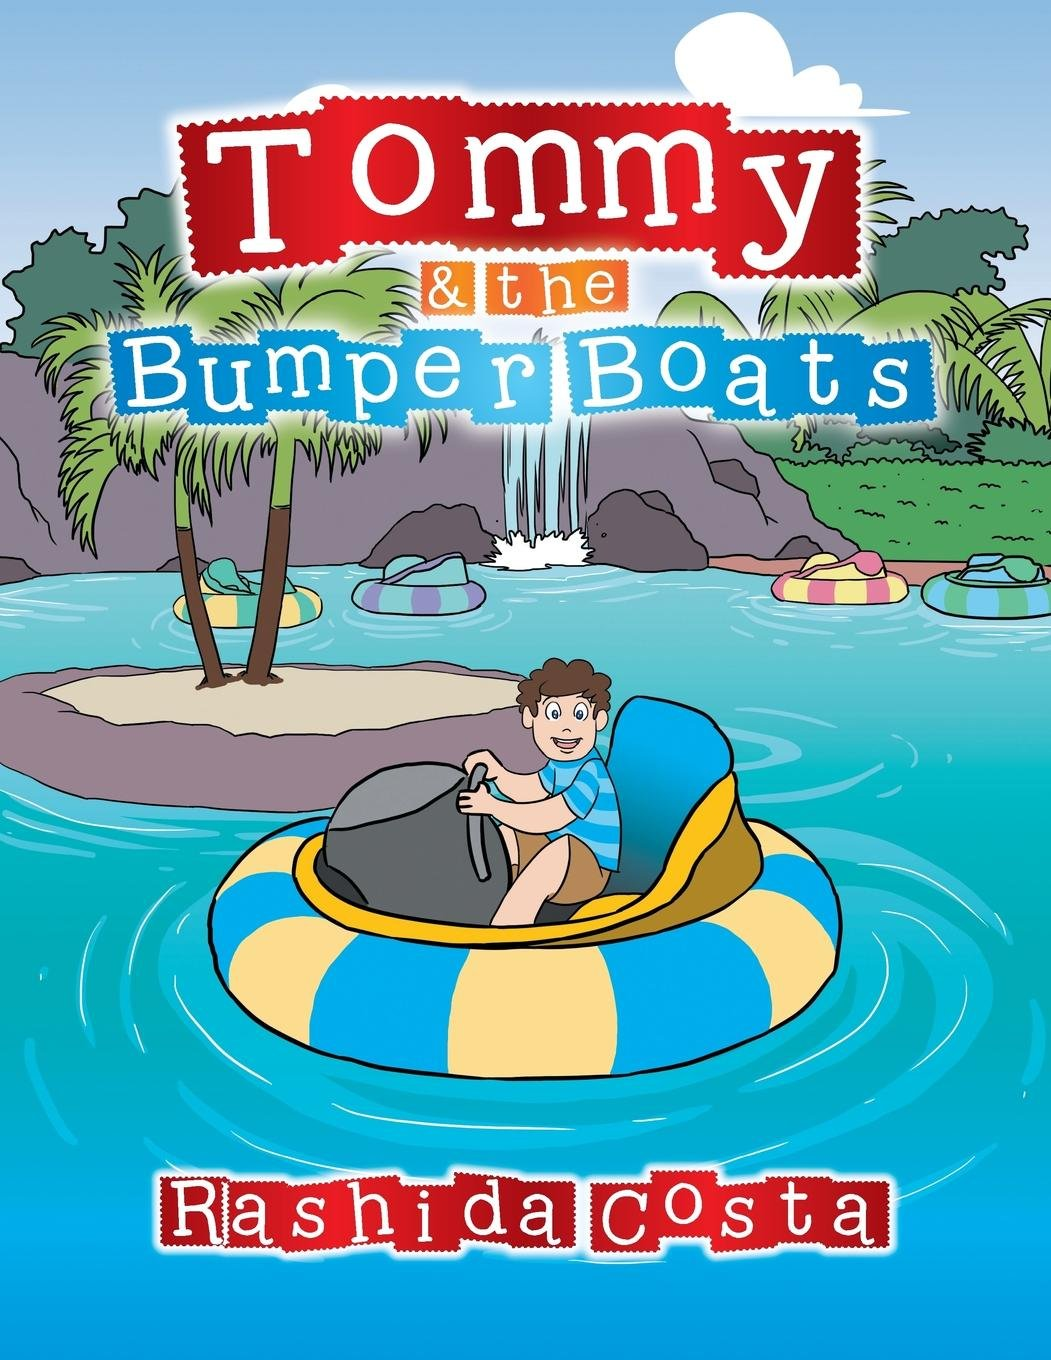 TOMMY-AND-THE-BUMPER-BOATS-COVER-HEADER